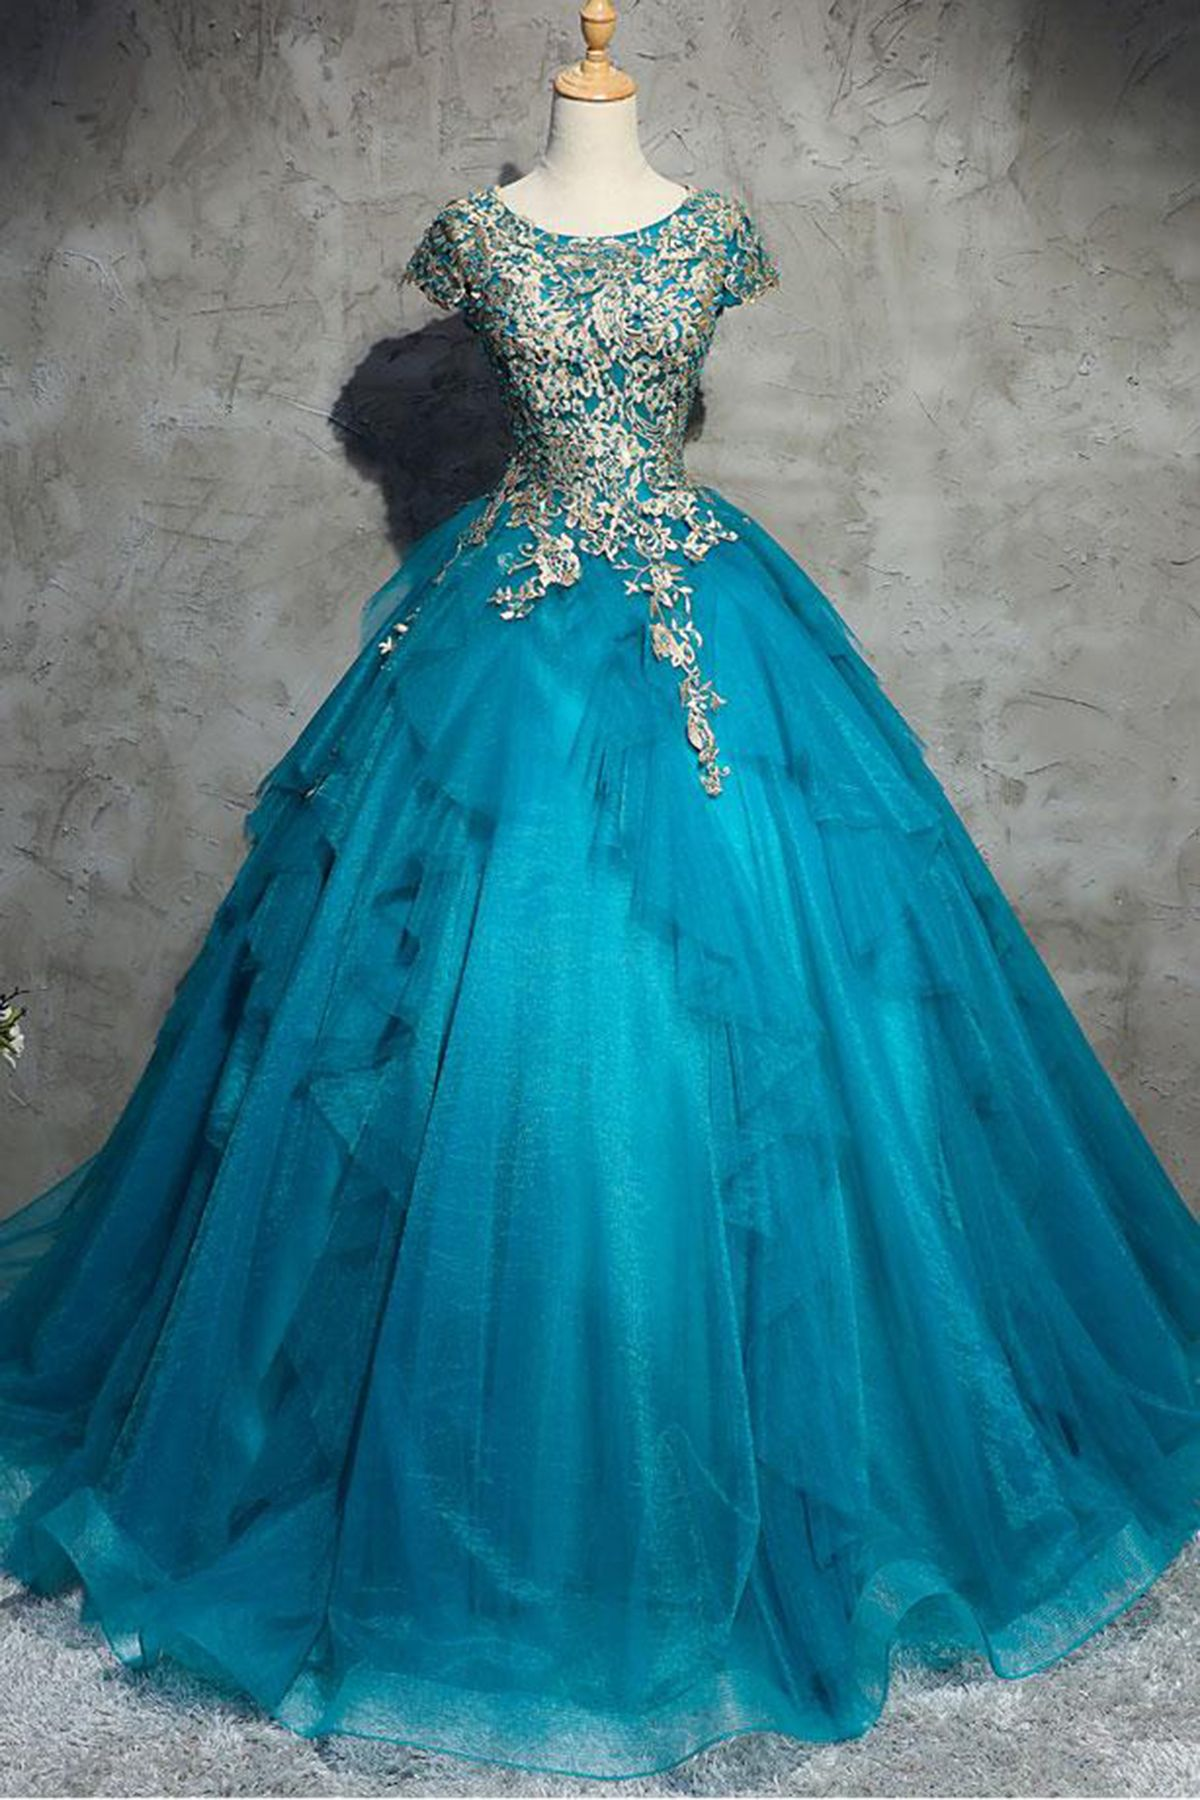 3121307bb84 Unique Blue Tulle Lace Top Round Neck Winter Formal Prom Dresses ...